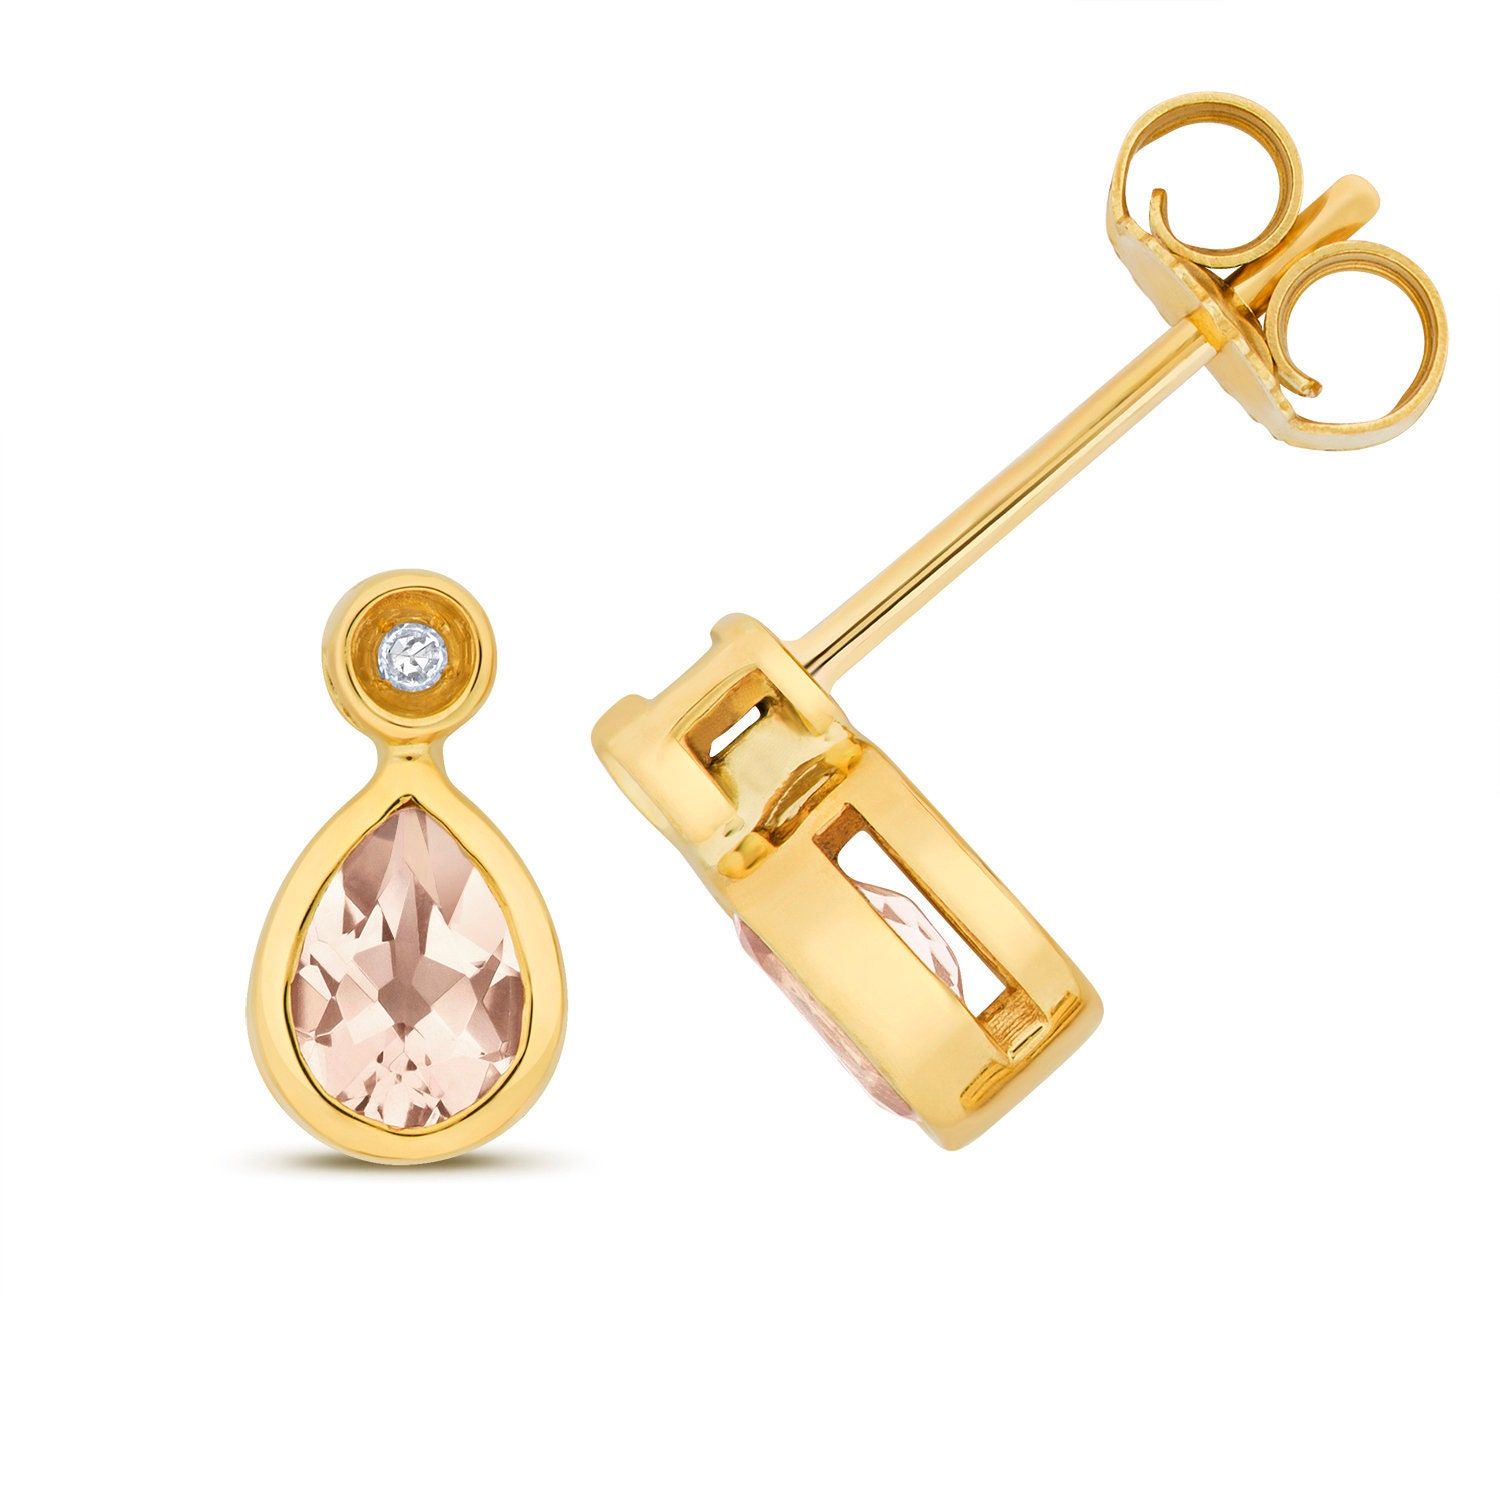 p gold of cttw morganite white earrings stud picture ebay s ct